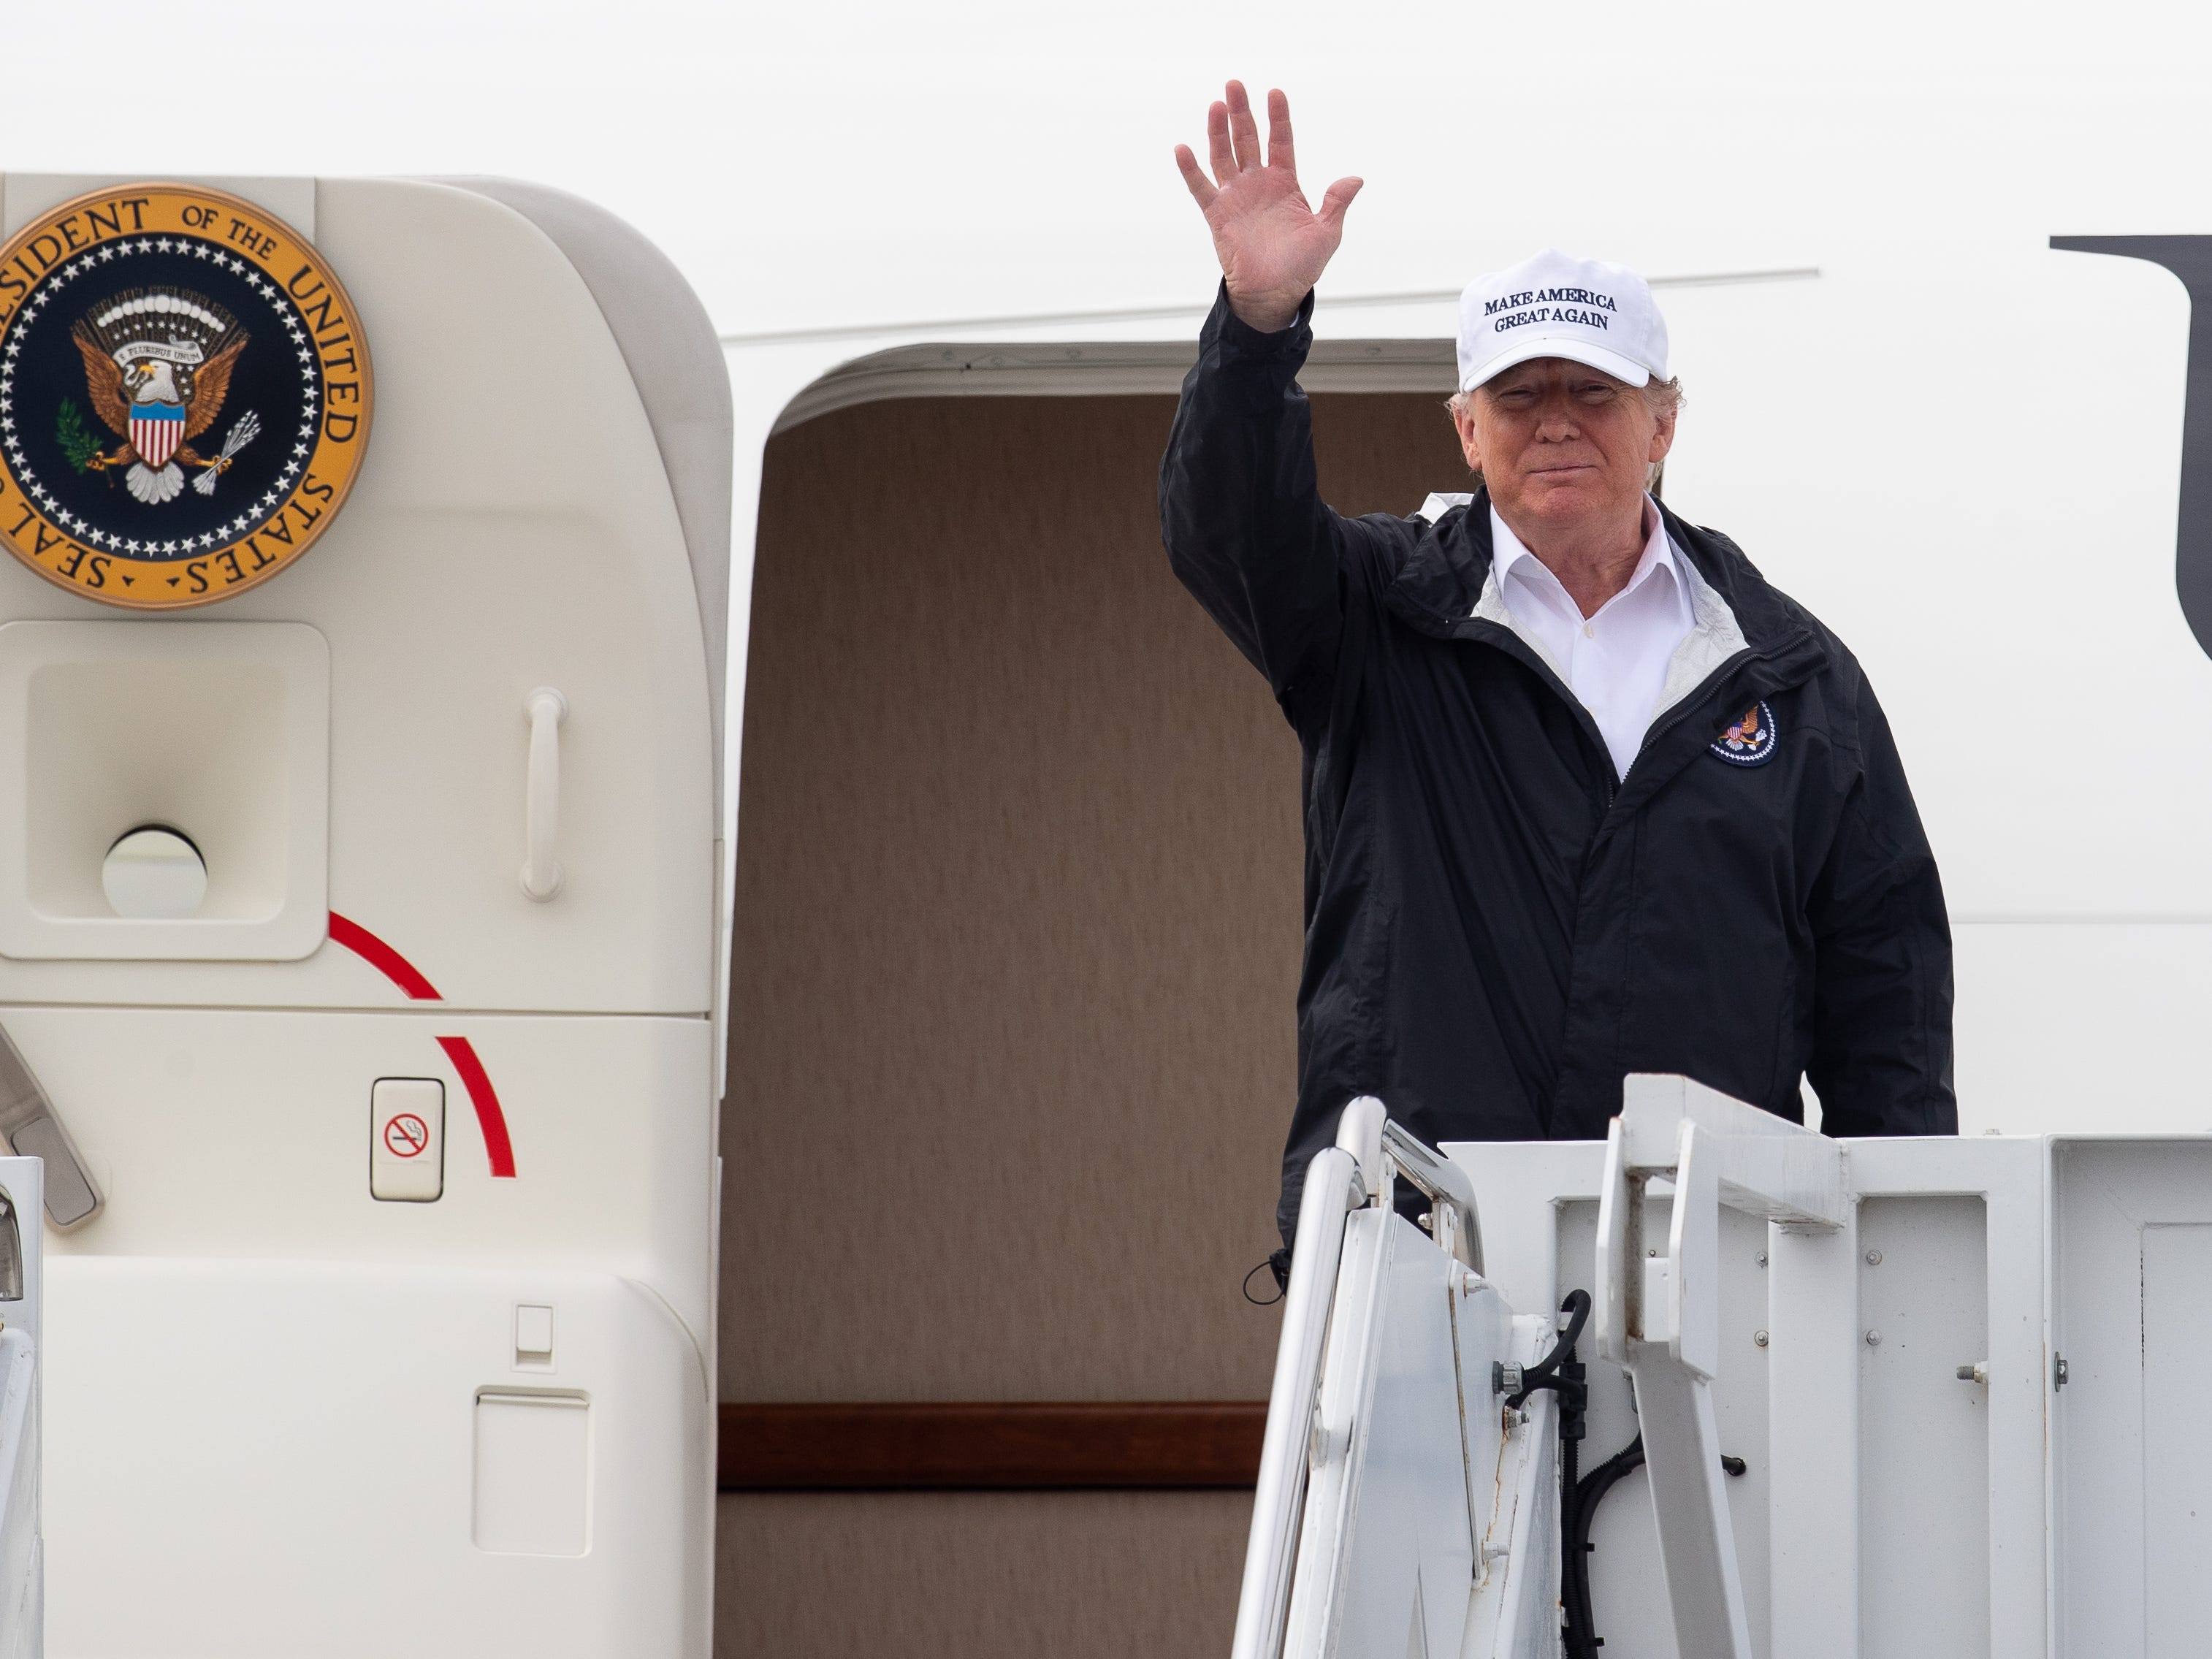 President Donald Trump arrives in McAllen, Tx to speak to offices and tour the U.S southern border on Thursday, Jan. 10, 2019. The trip comes two days after President Trump delivered a nation wide address setting there is a crises along the border and calling for a wall or barrier.